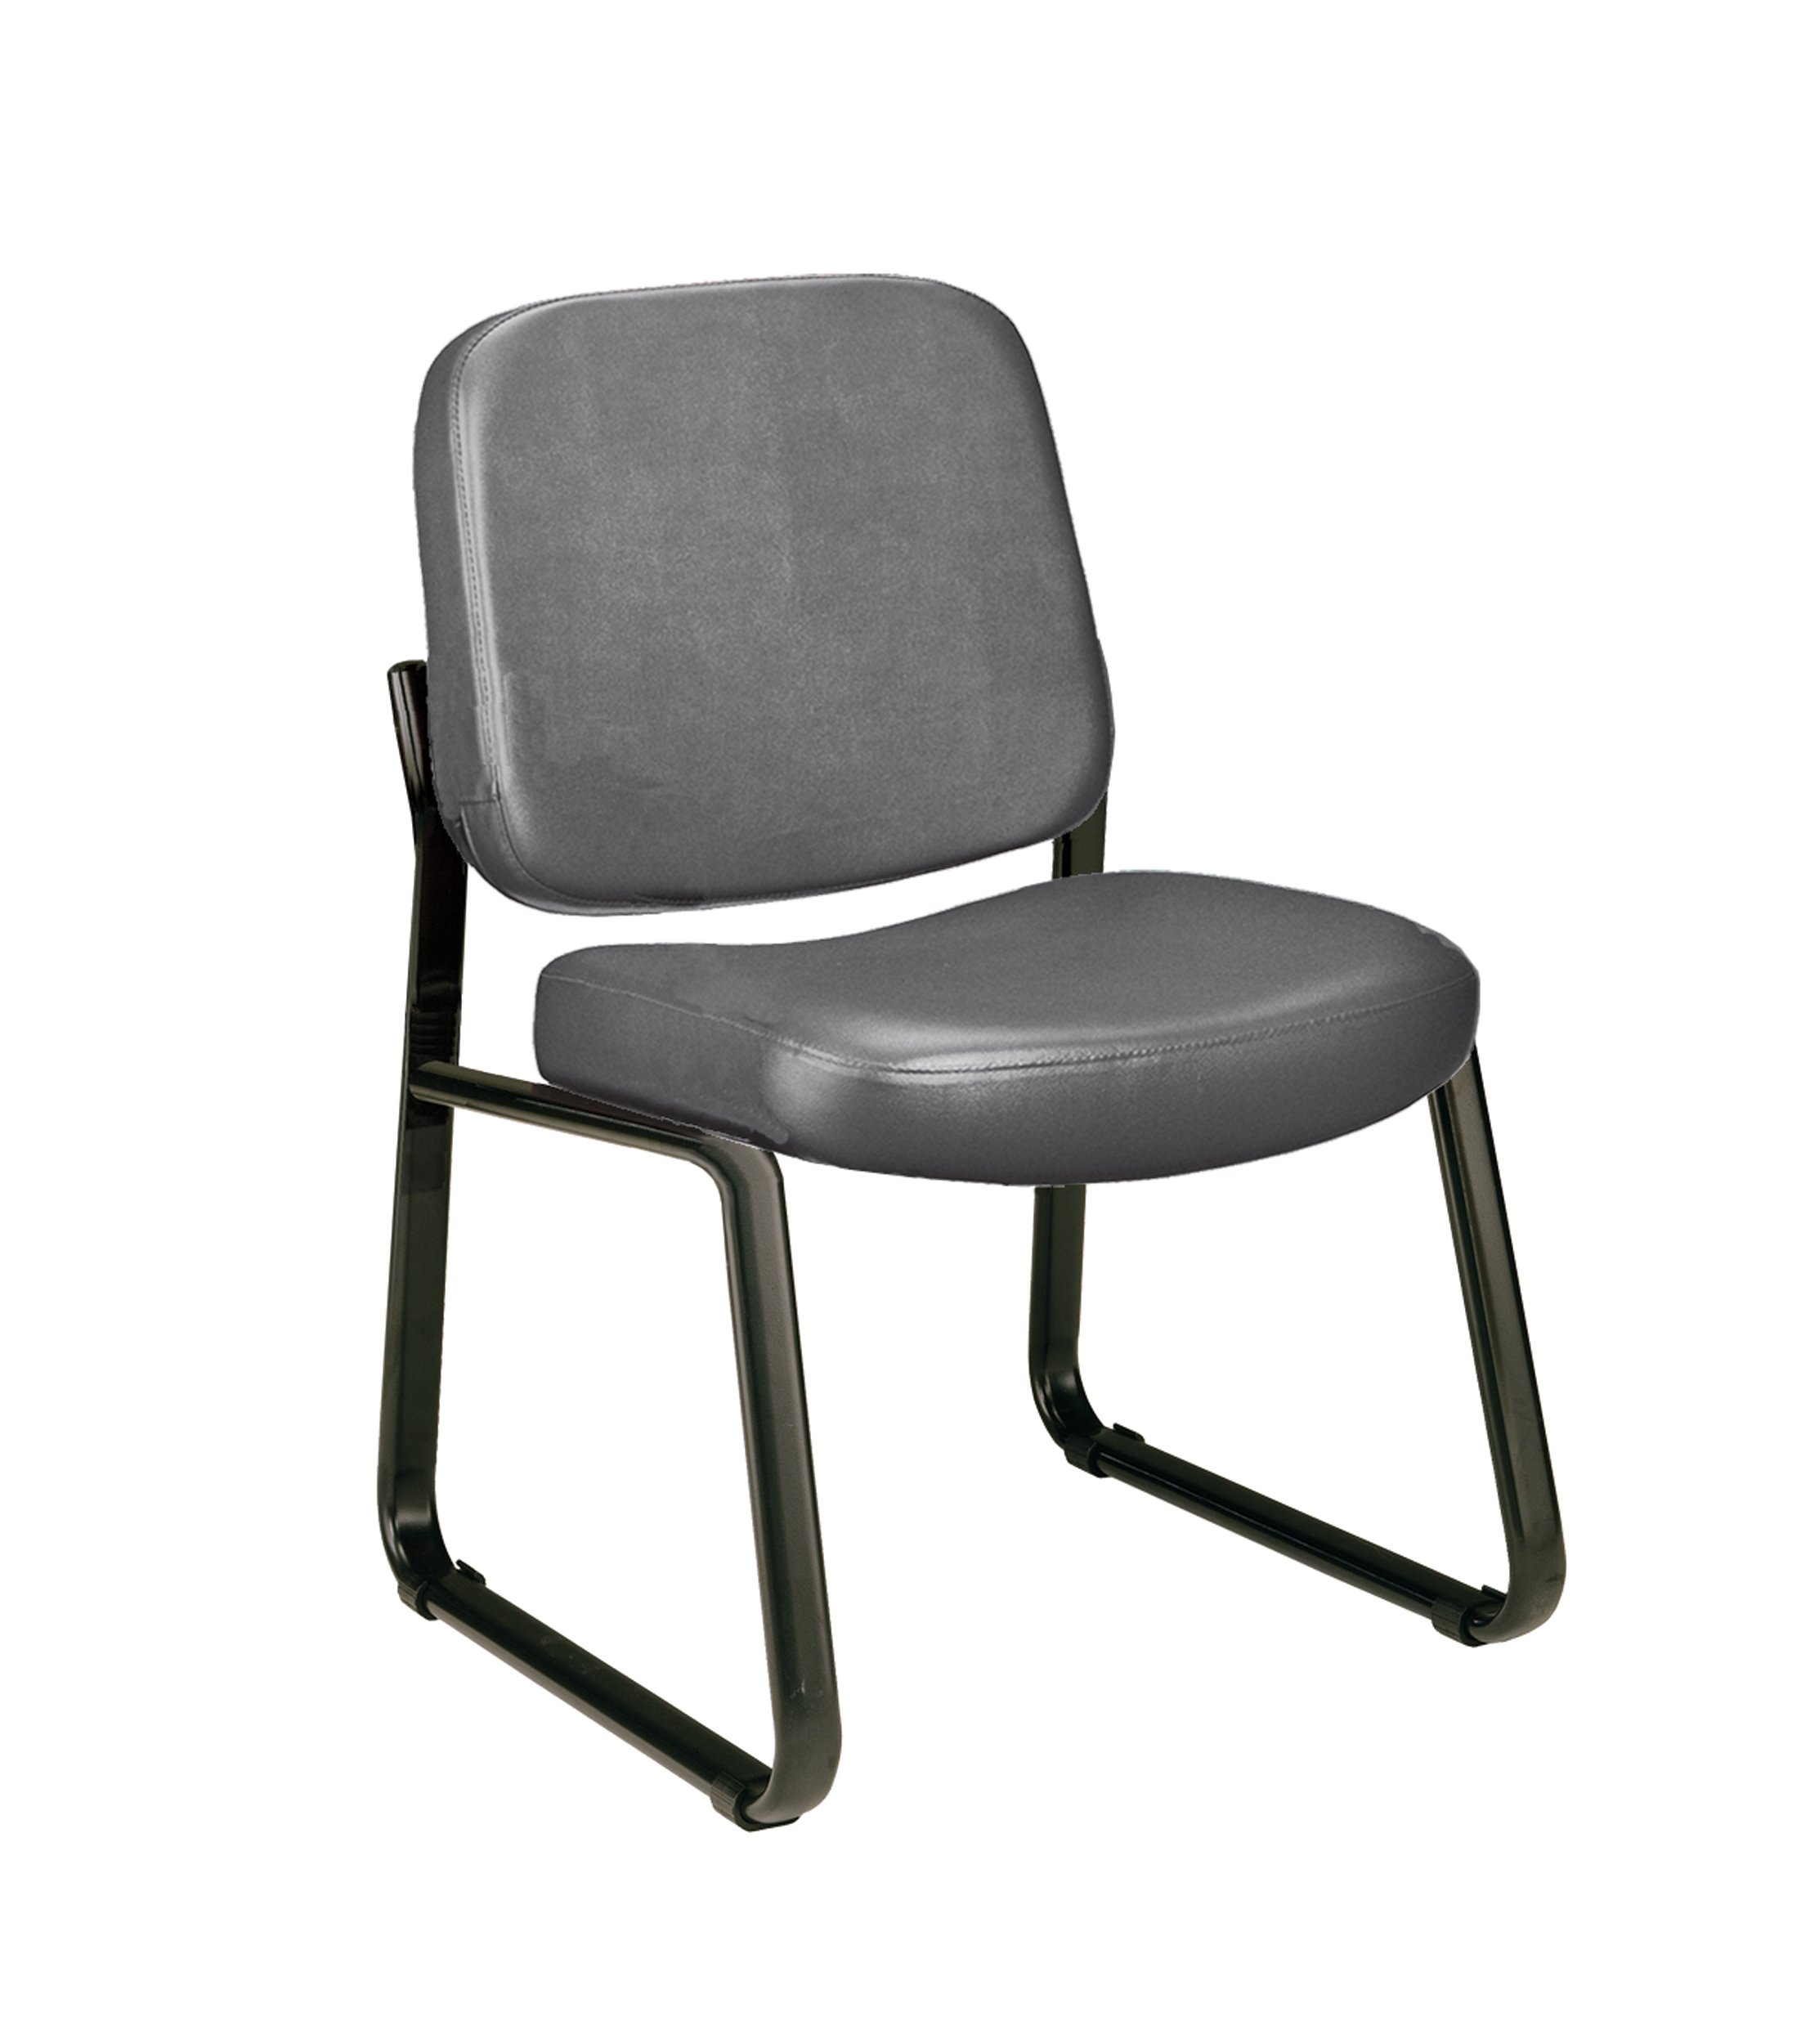 OFM Anti-Microbial/Anti-Bacterial Vinyl Guest/Reception Chair, Charcoal